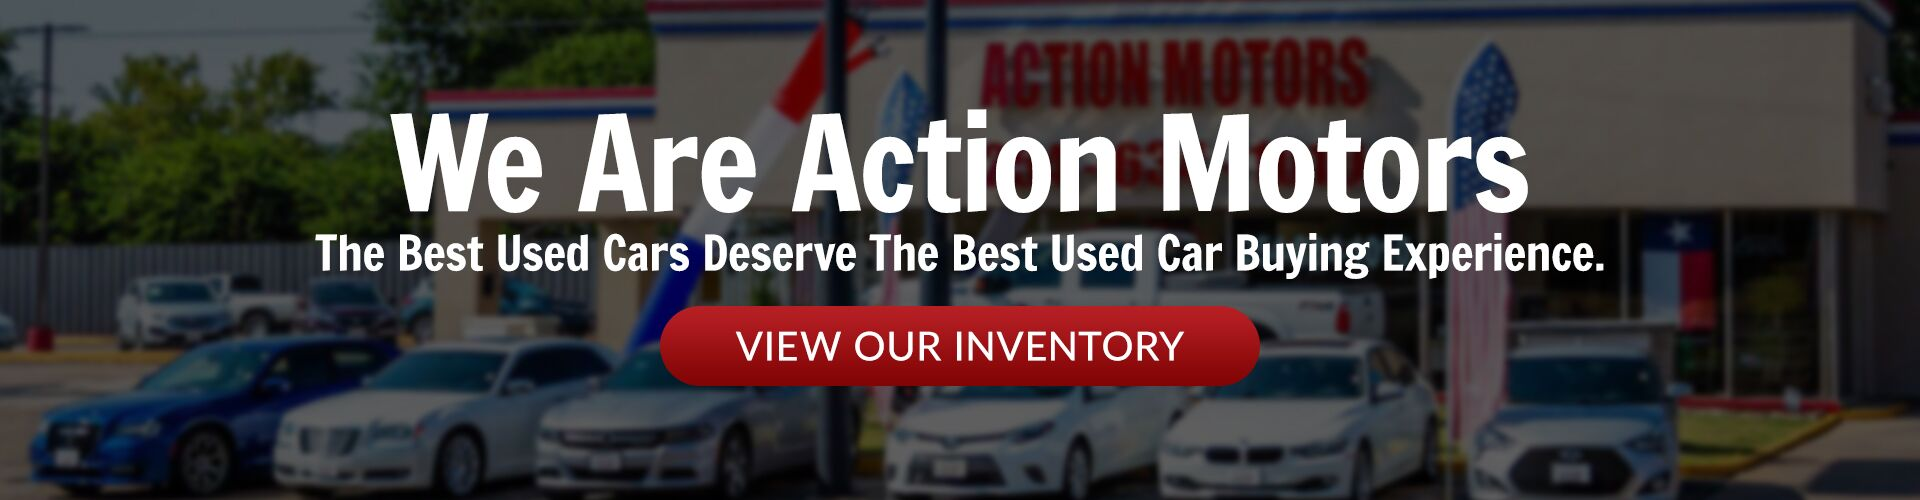 Action Motors Profile